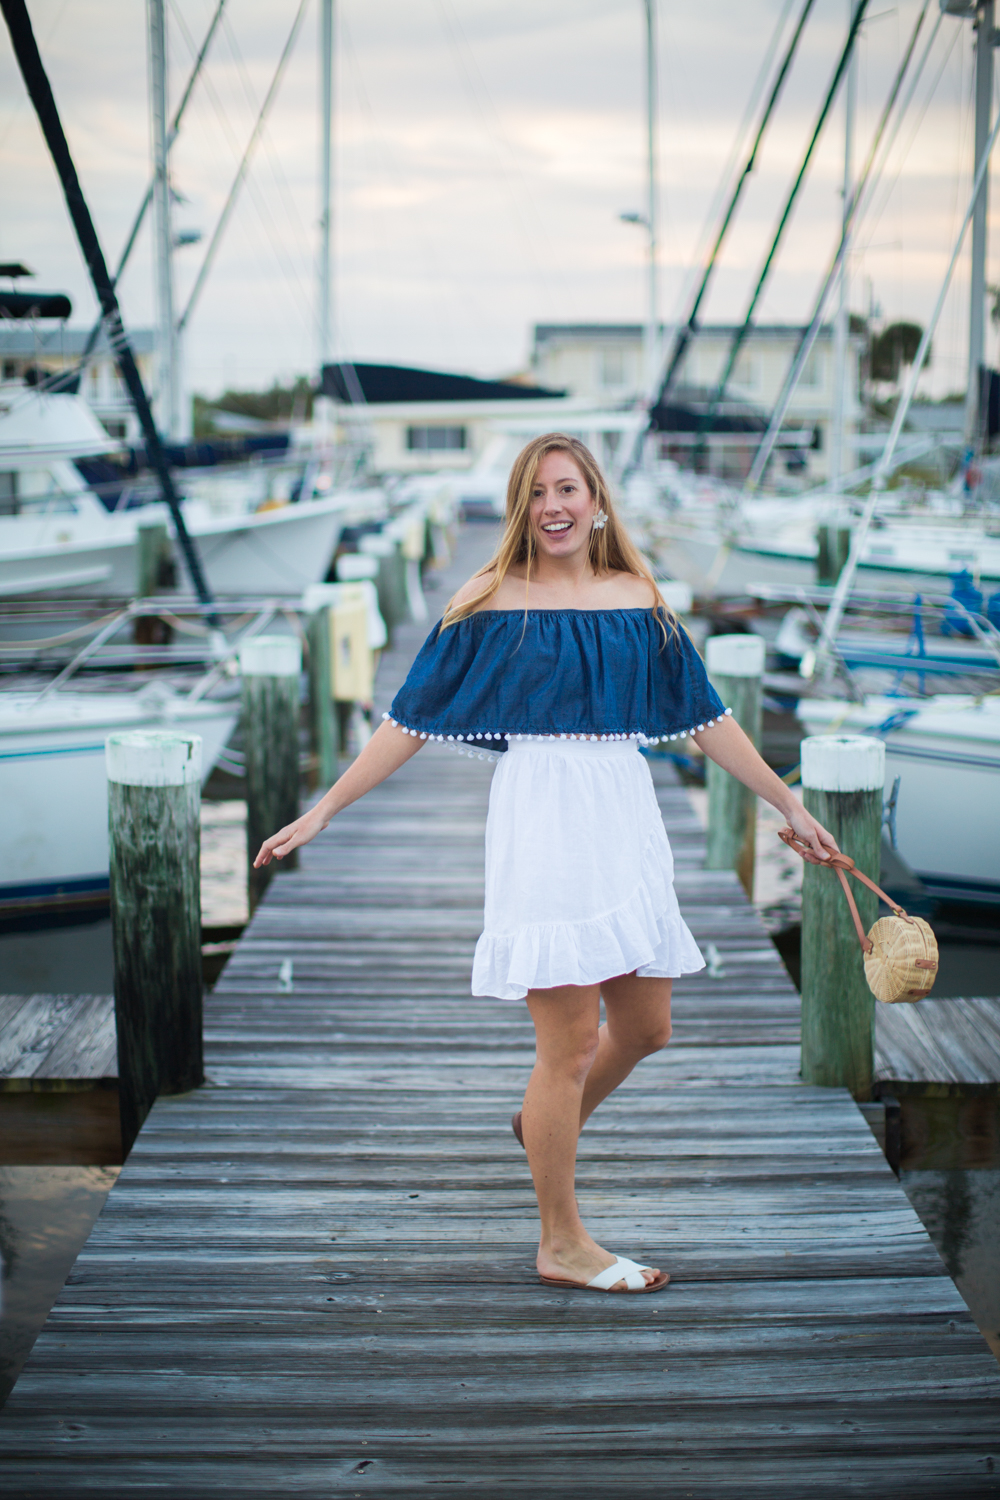 What to Wear on a Summer Beach Vacation | Summer Beach Outfit Idea | Beach Vacation Outfit | Cruisewear | What to Pack for your Summer Beach Vacation | Beachwear for Women - A Nautical Inspired Summer Beach Outfit by Katie McCarty of Sunshine Style